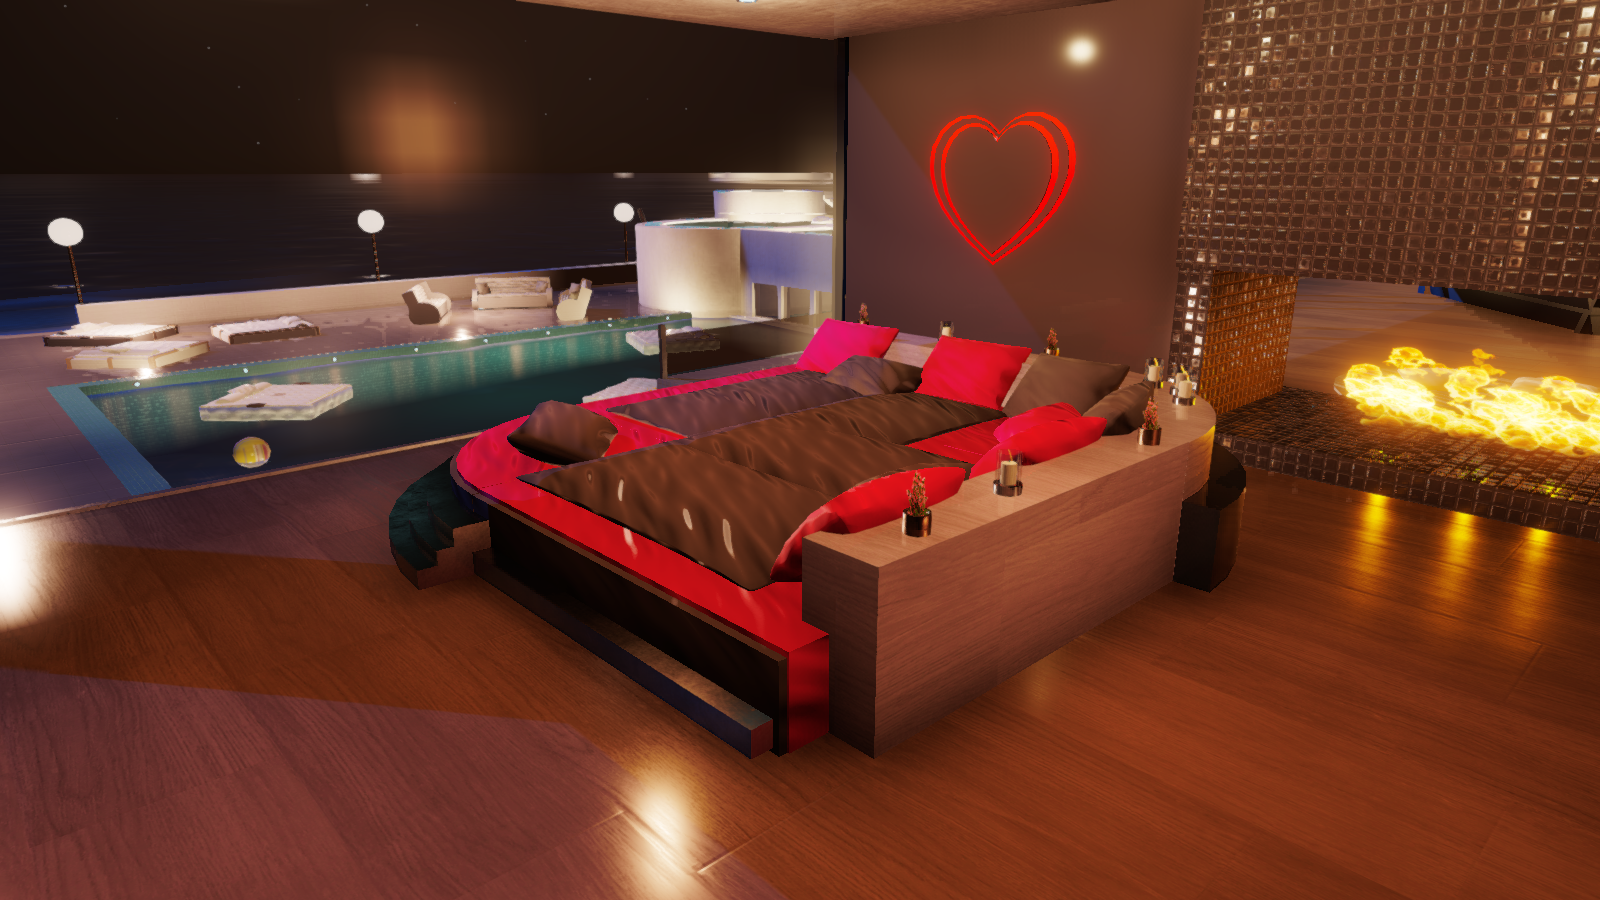 Home made bed, 4 bed poses added into the bed